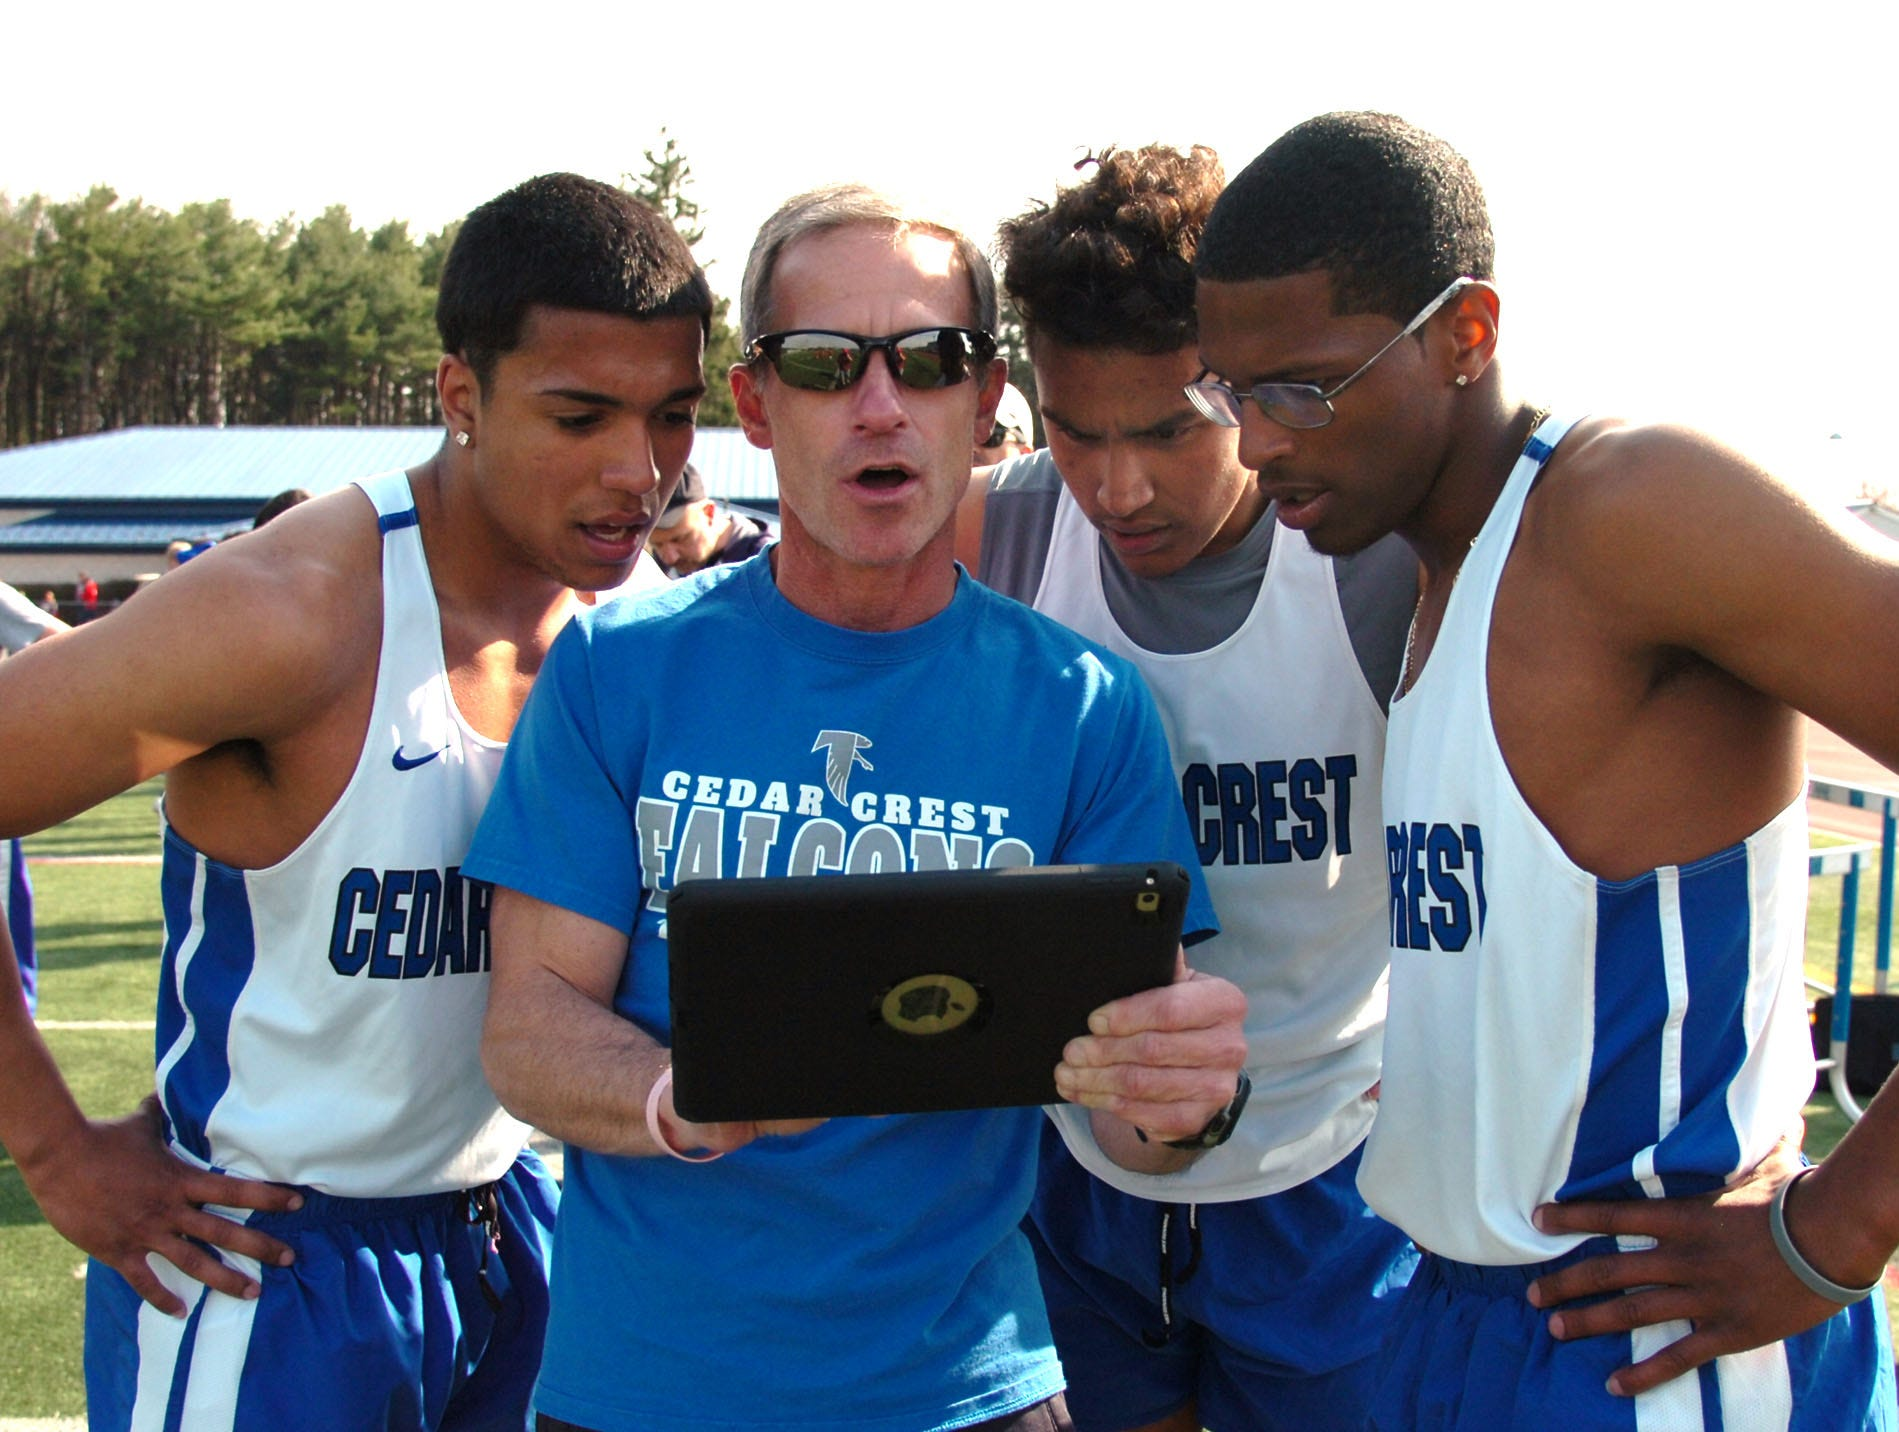 Rob Bare huddling with his runners